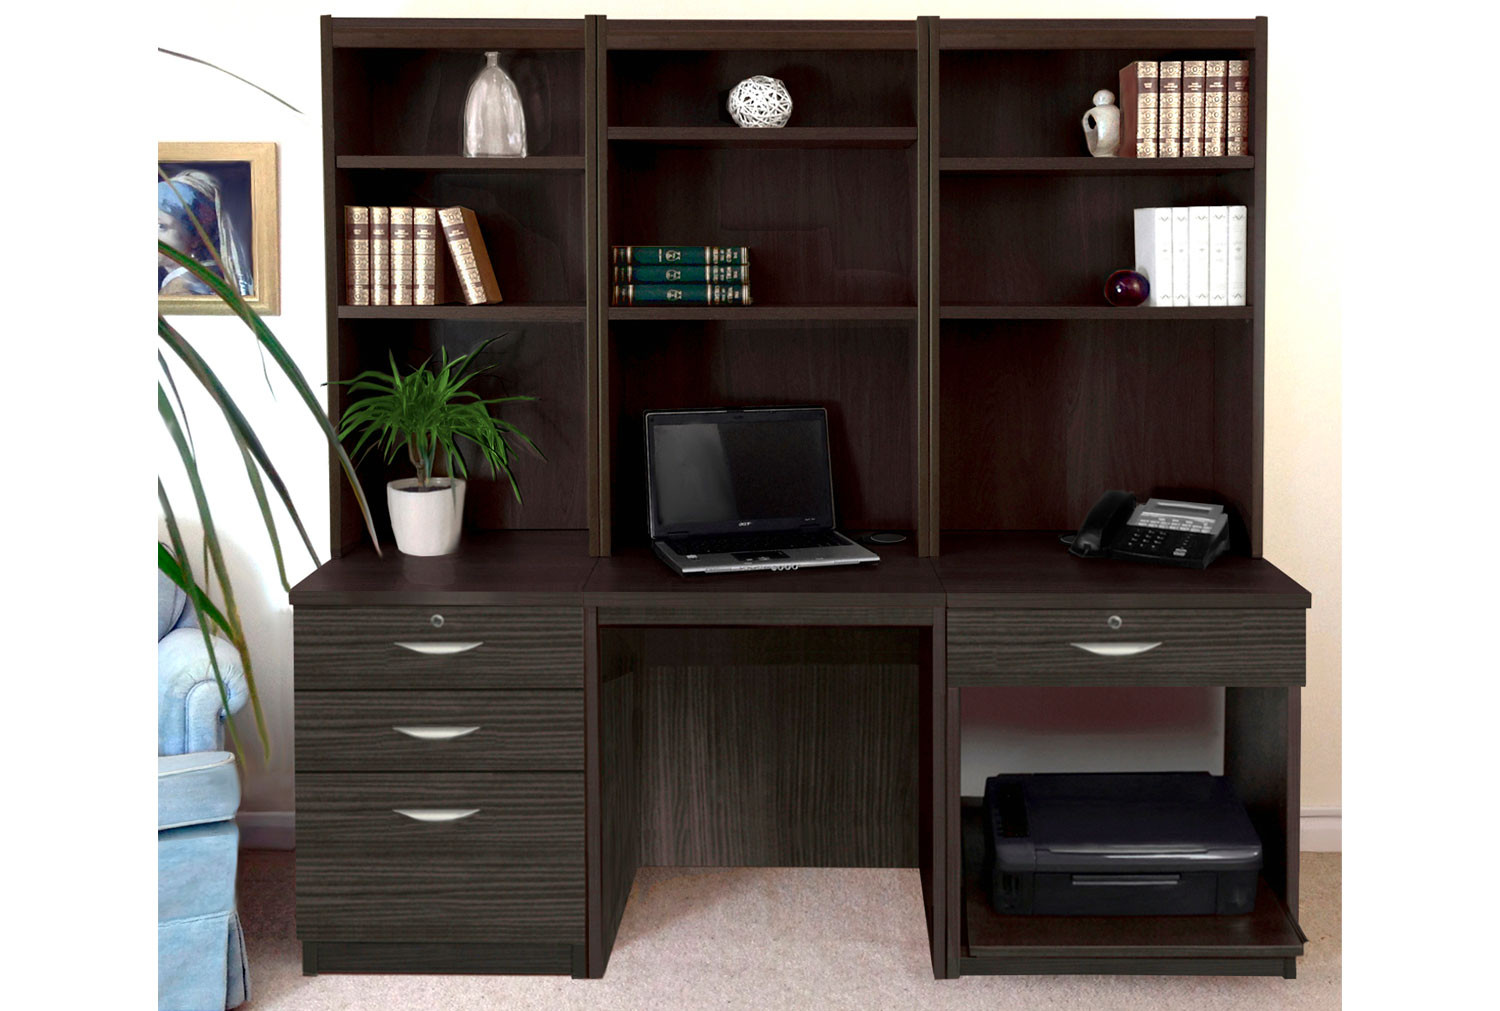 Small Office Desk Set With 3+1 Drawers, Printer Shelf & Hutch Bookcases (Black Havana)